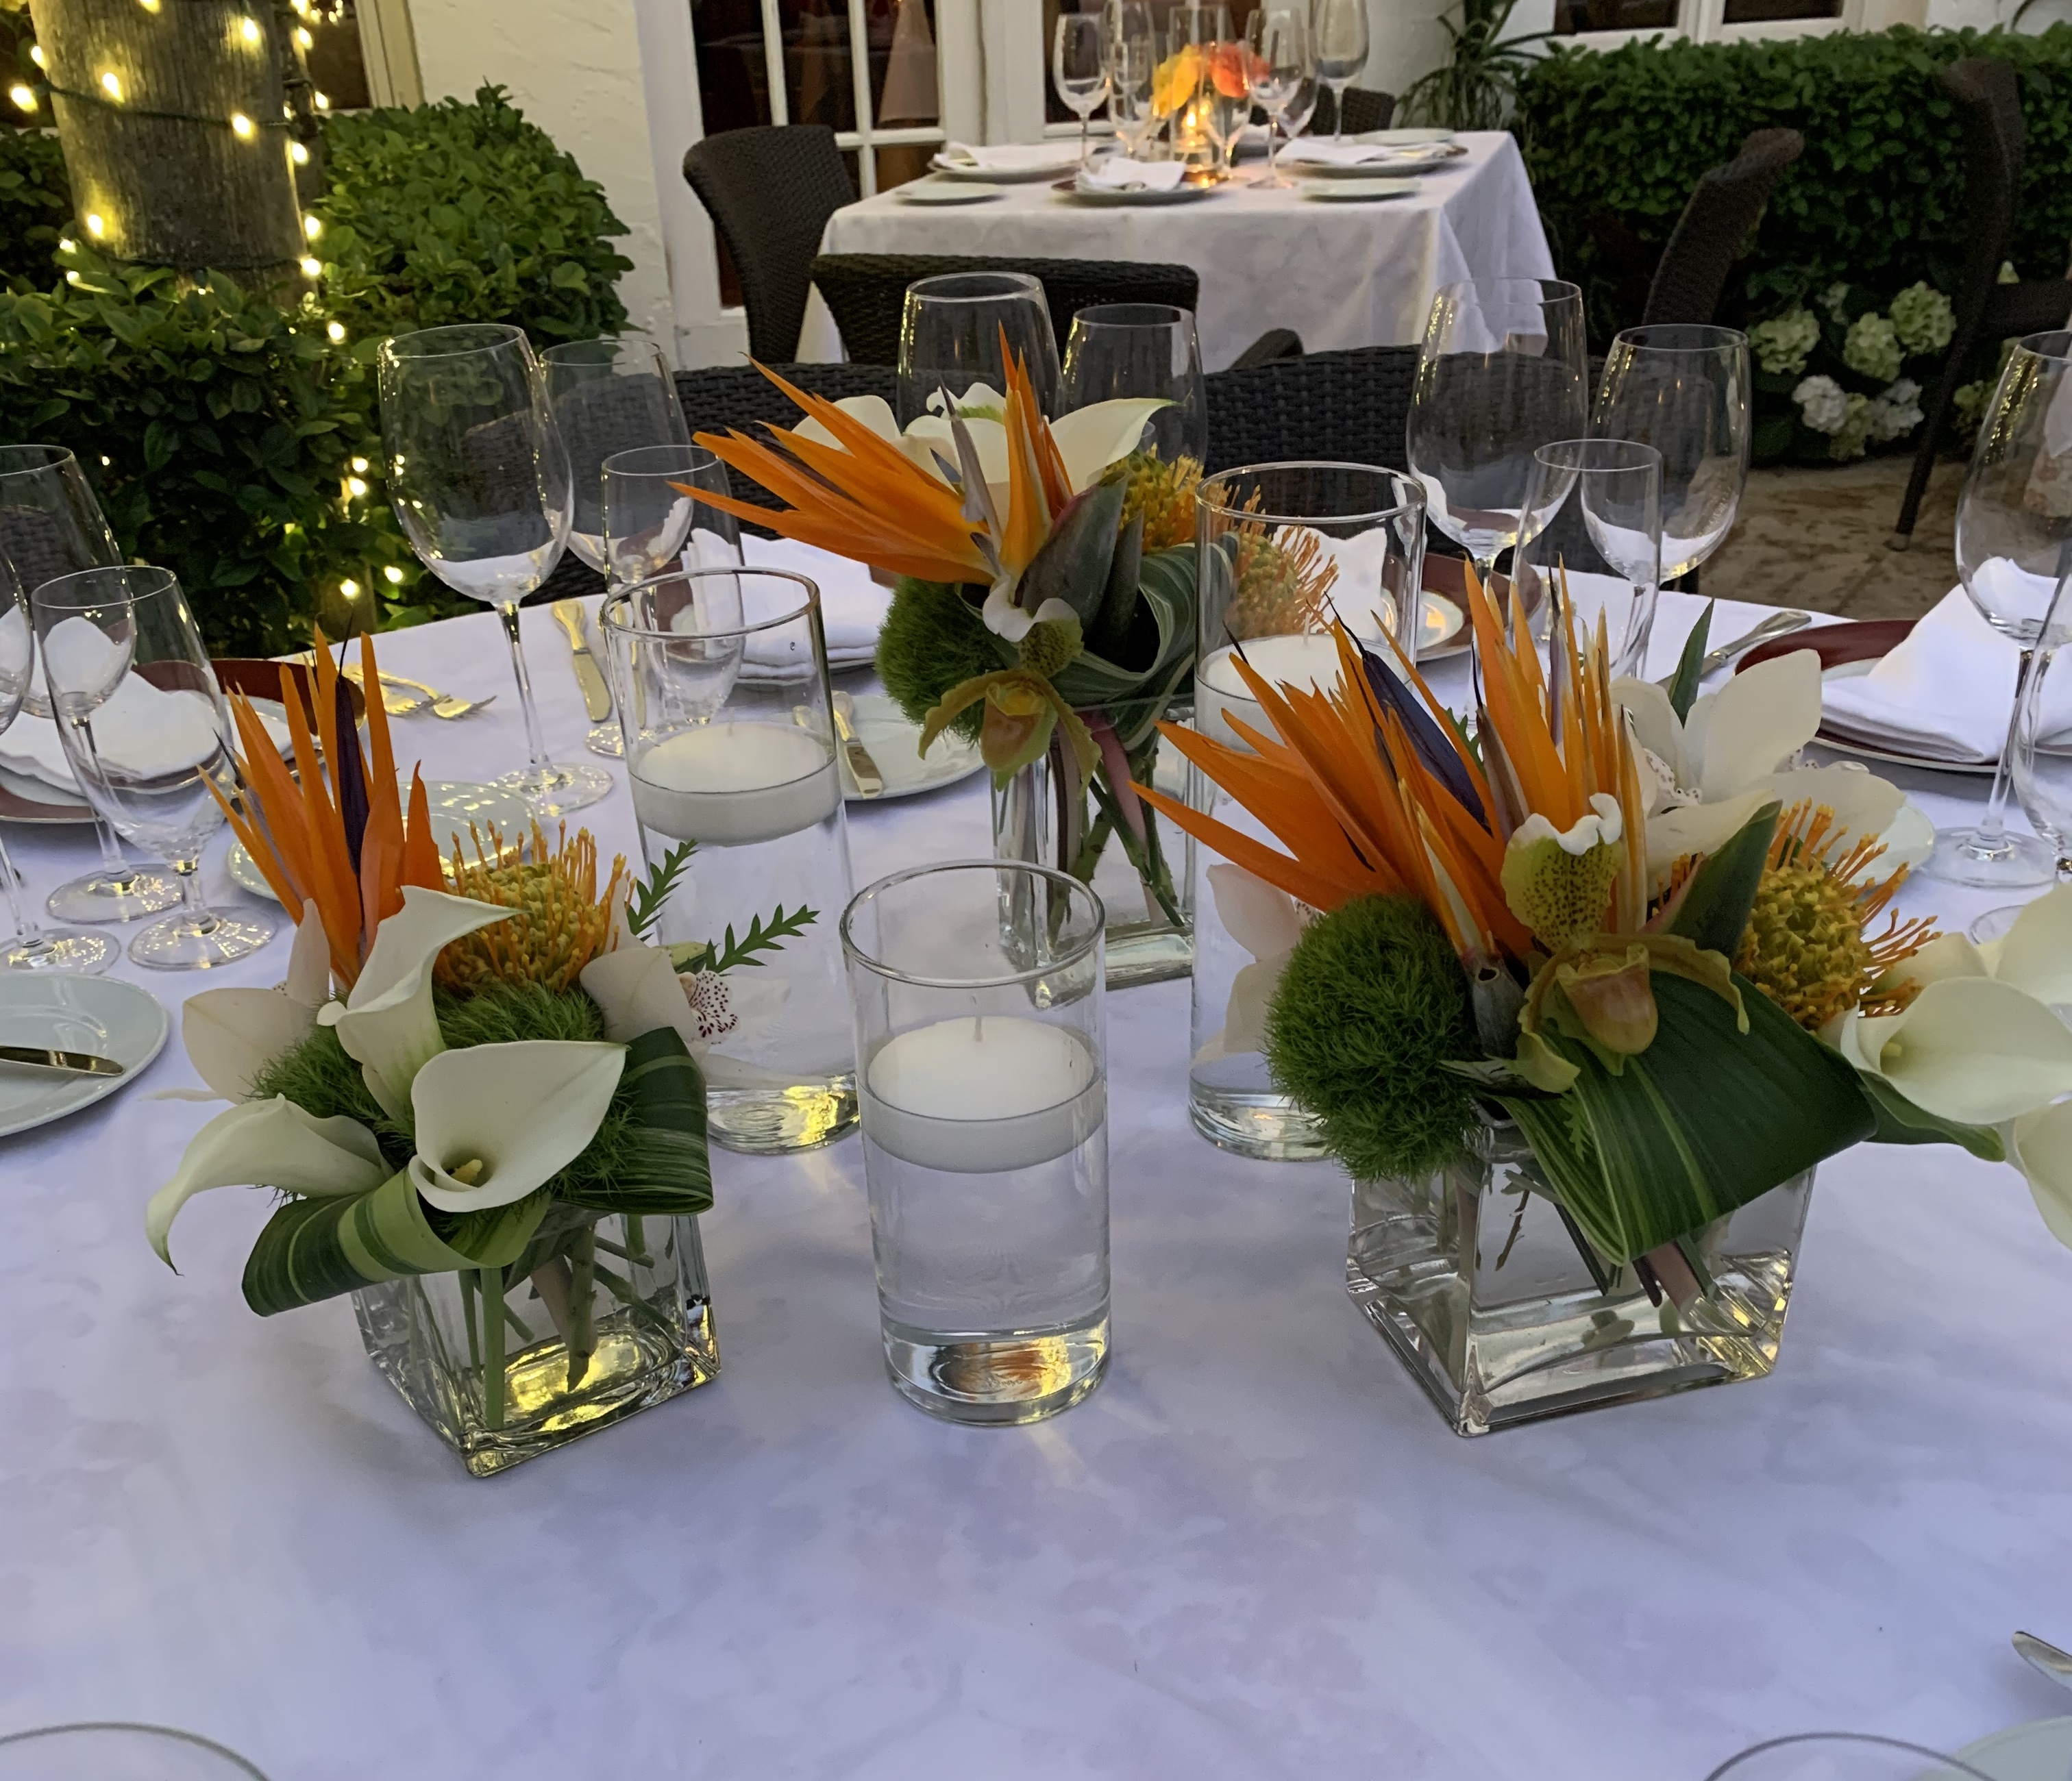 Outdoor Tropical Dining Table Arrangements Velene's Floral